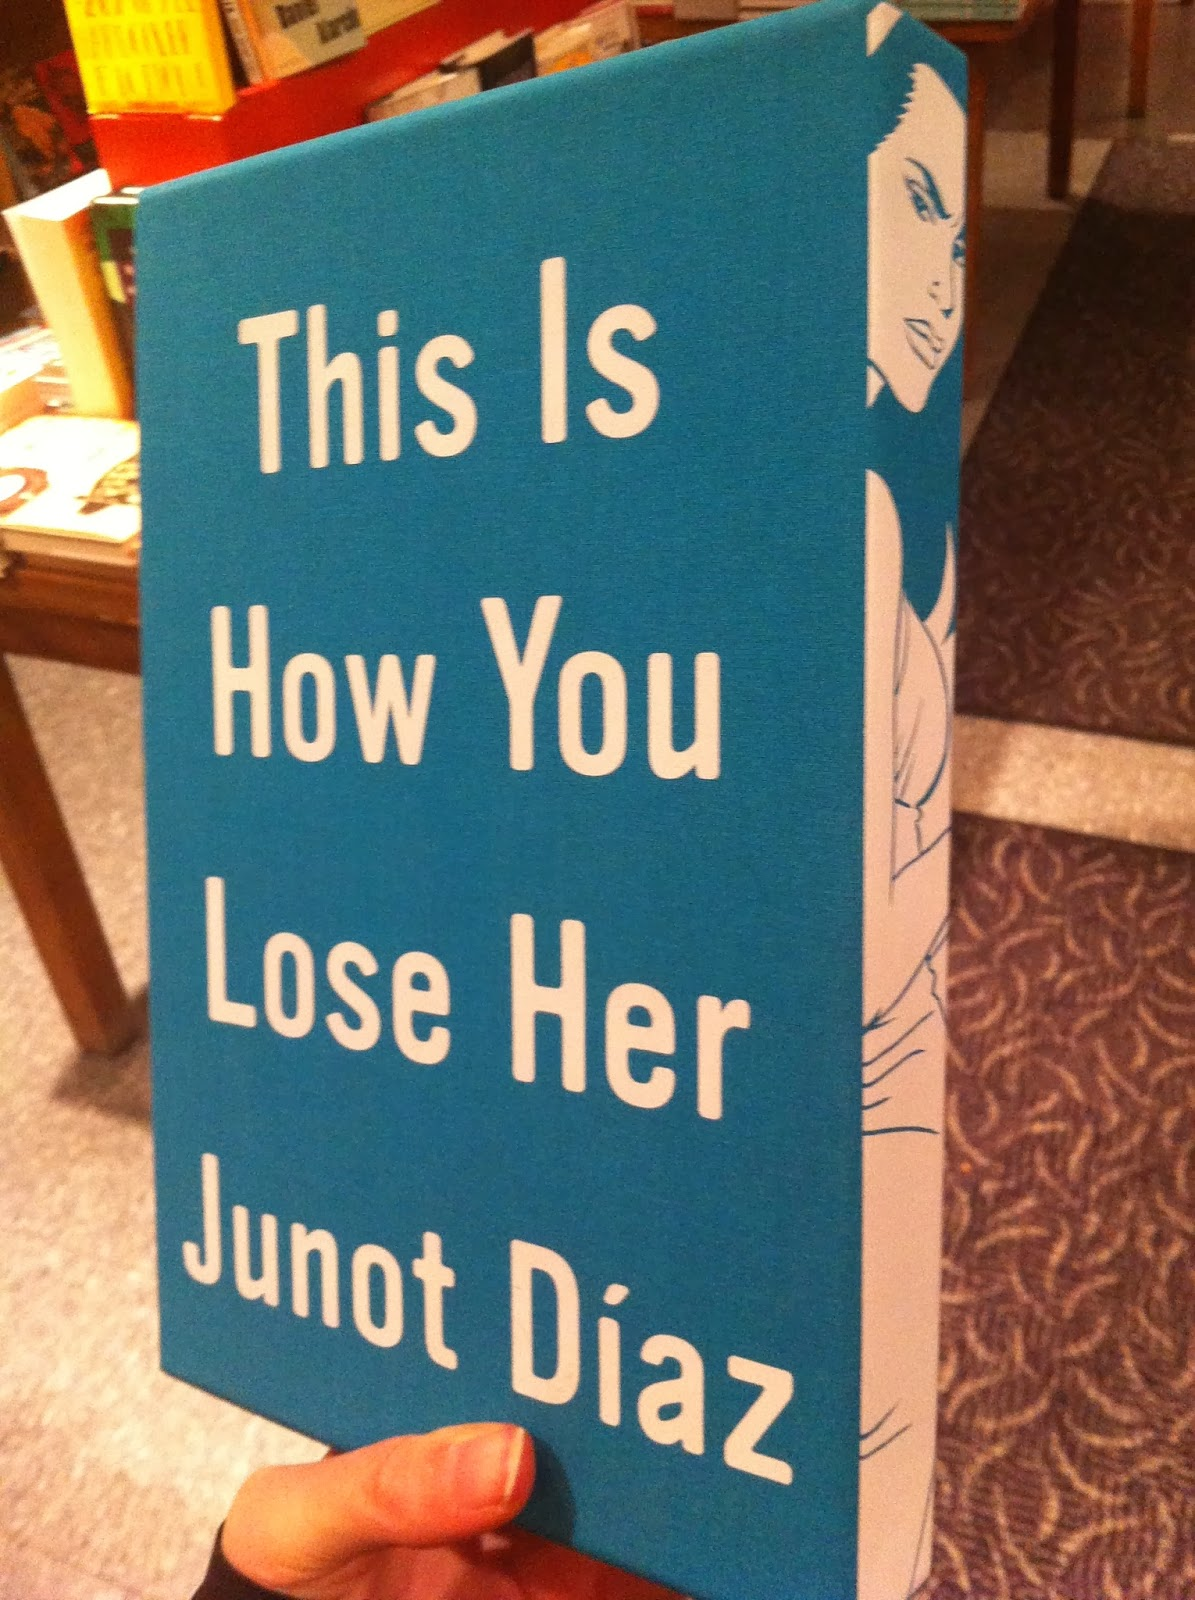 This is how you lose her deluxe edition by junot diaz illustrated by jaime hernandez